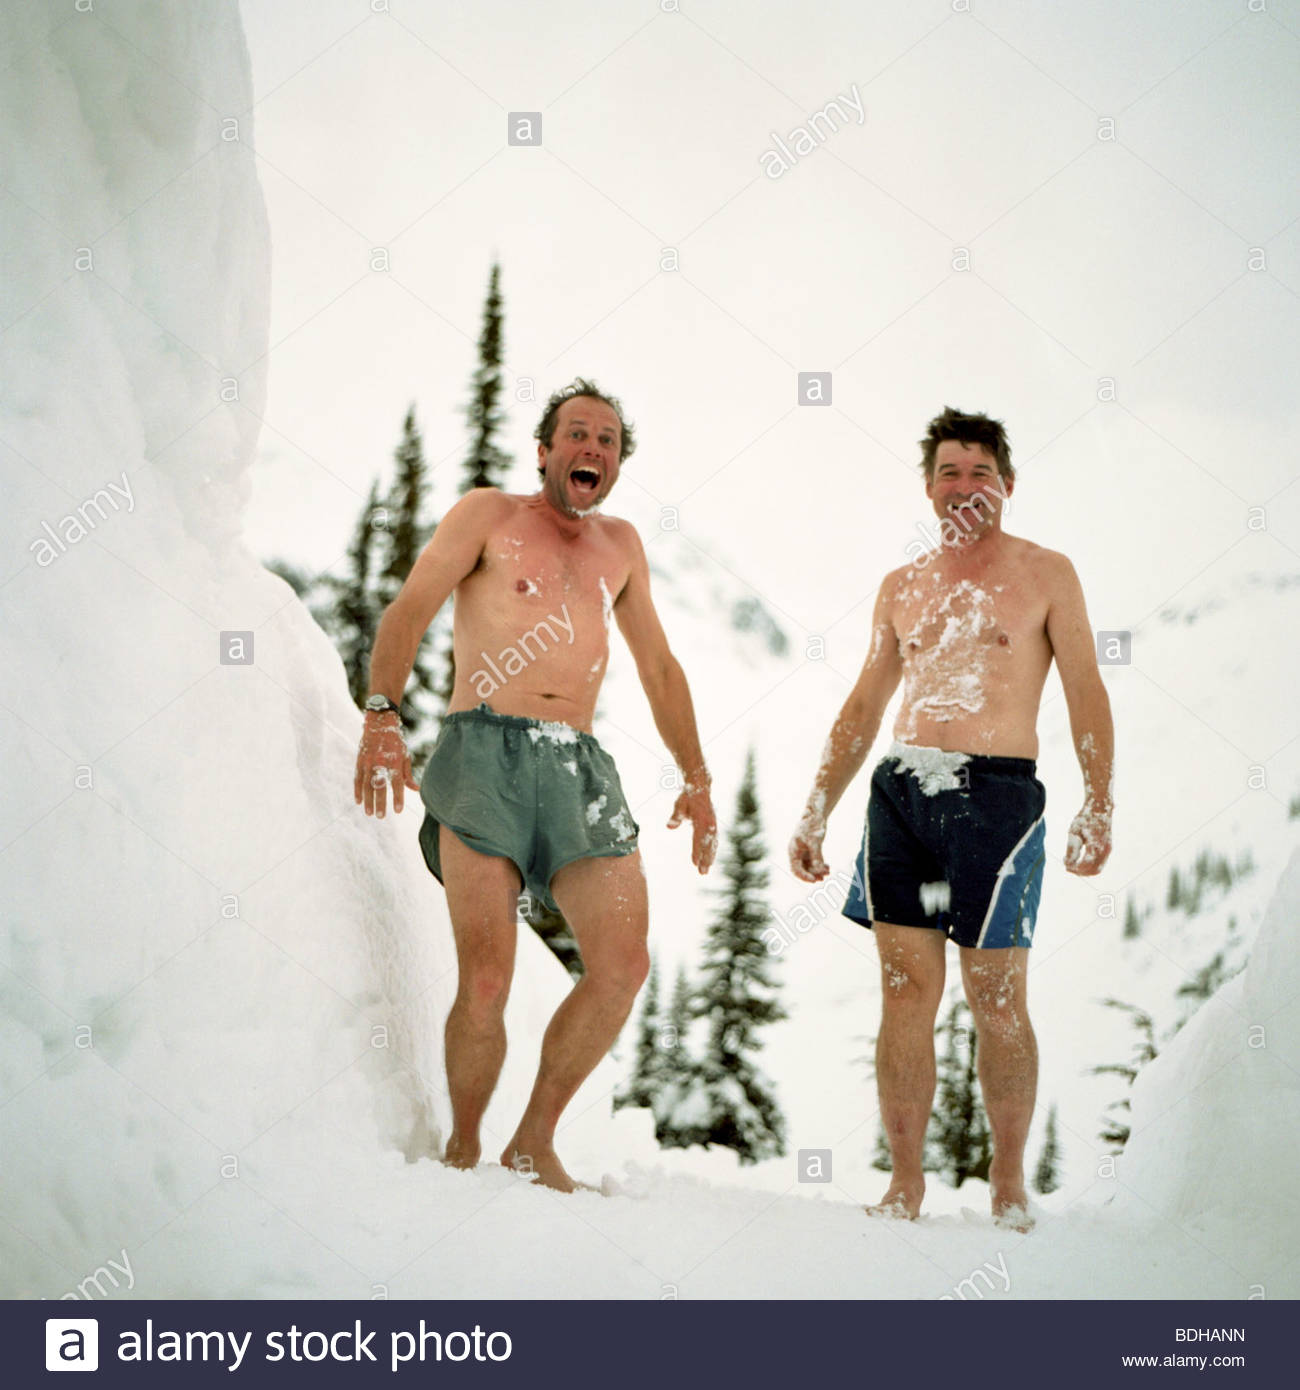 Two men stand covered in snow wearing only swimming suits at a backcountry ski lodge in British Columbia, Canada. - Stock Image